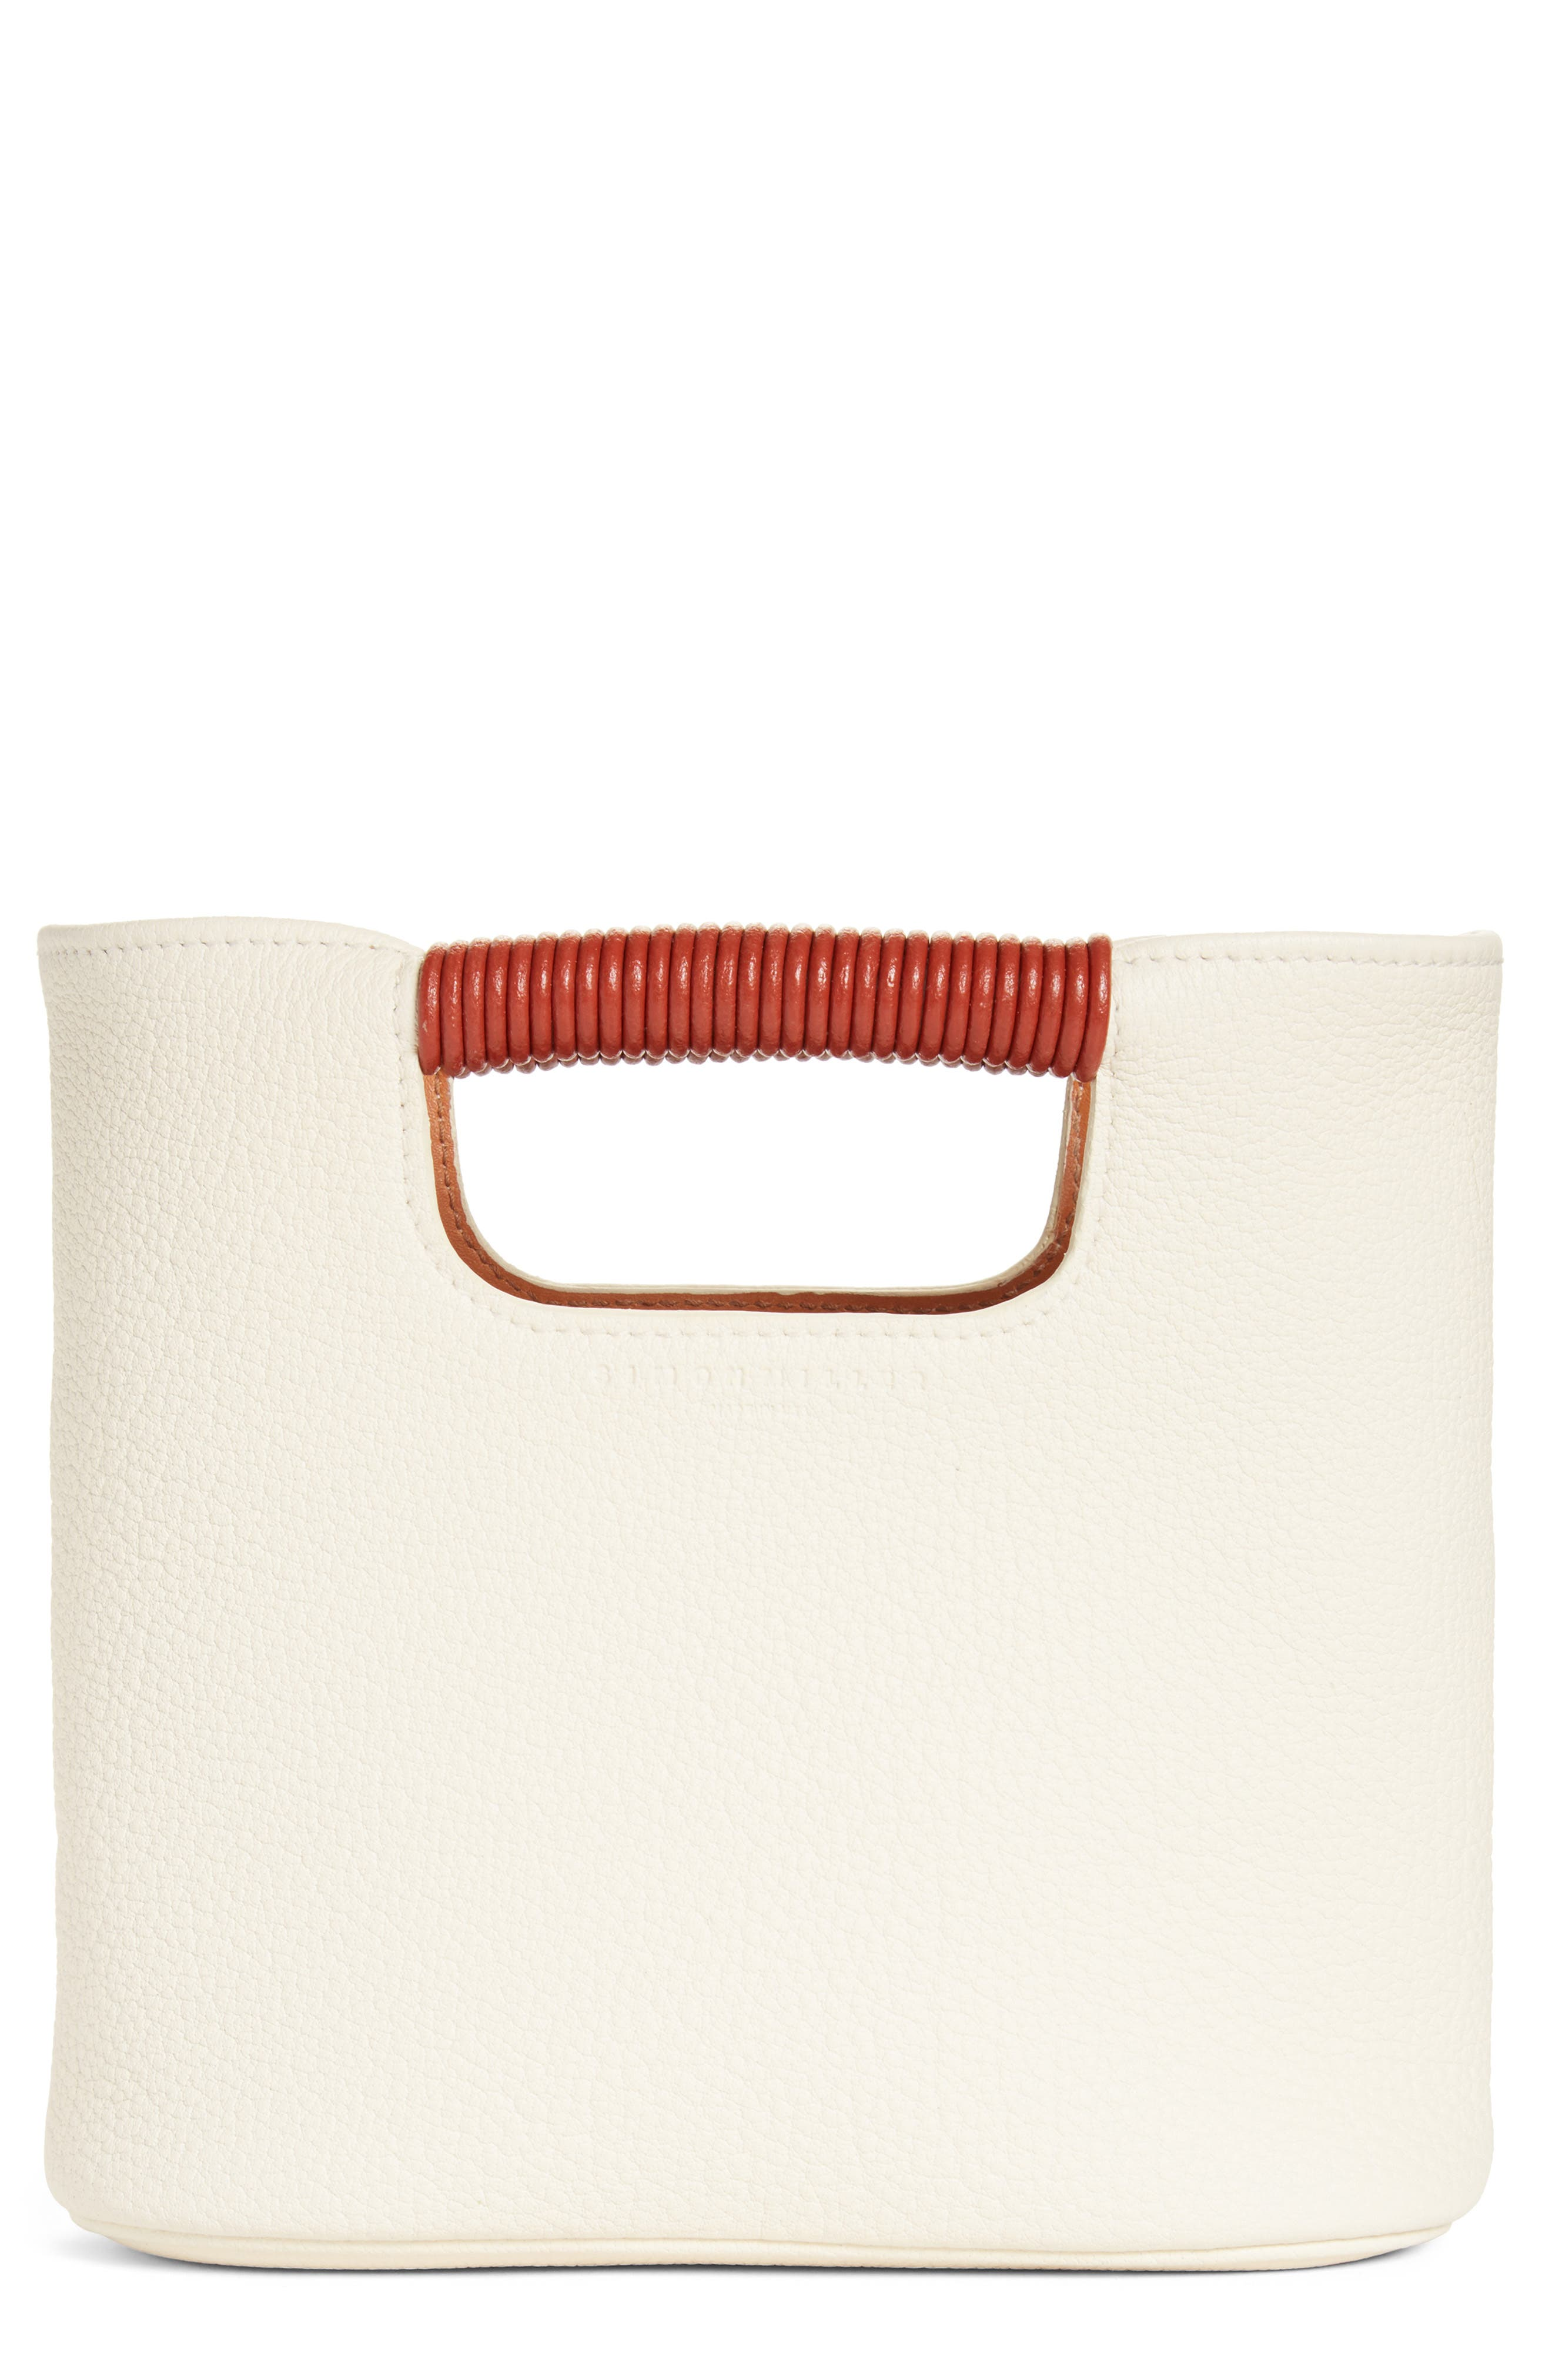 Alternate Image 1 Selected - Simon Miller Mini Birch Leather Tote (Nordstrom Exclusive)